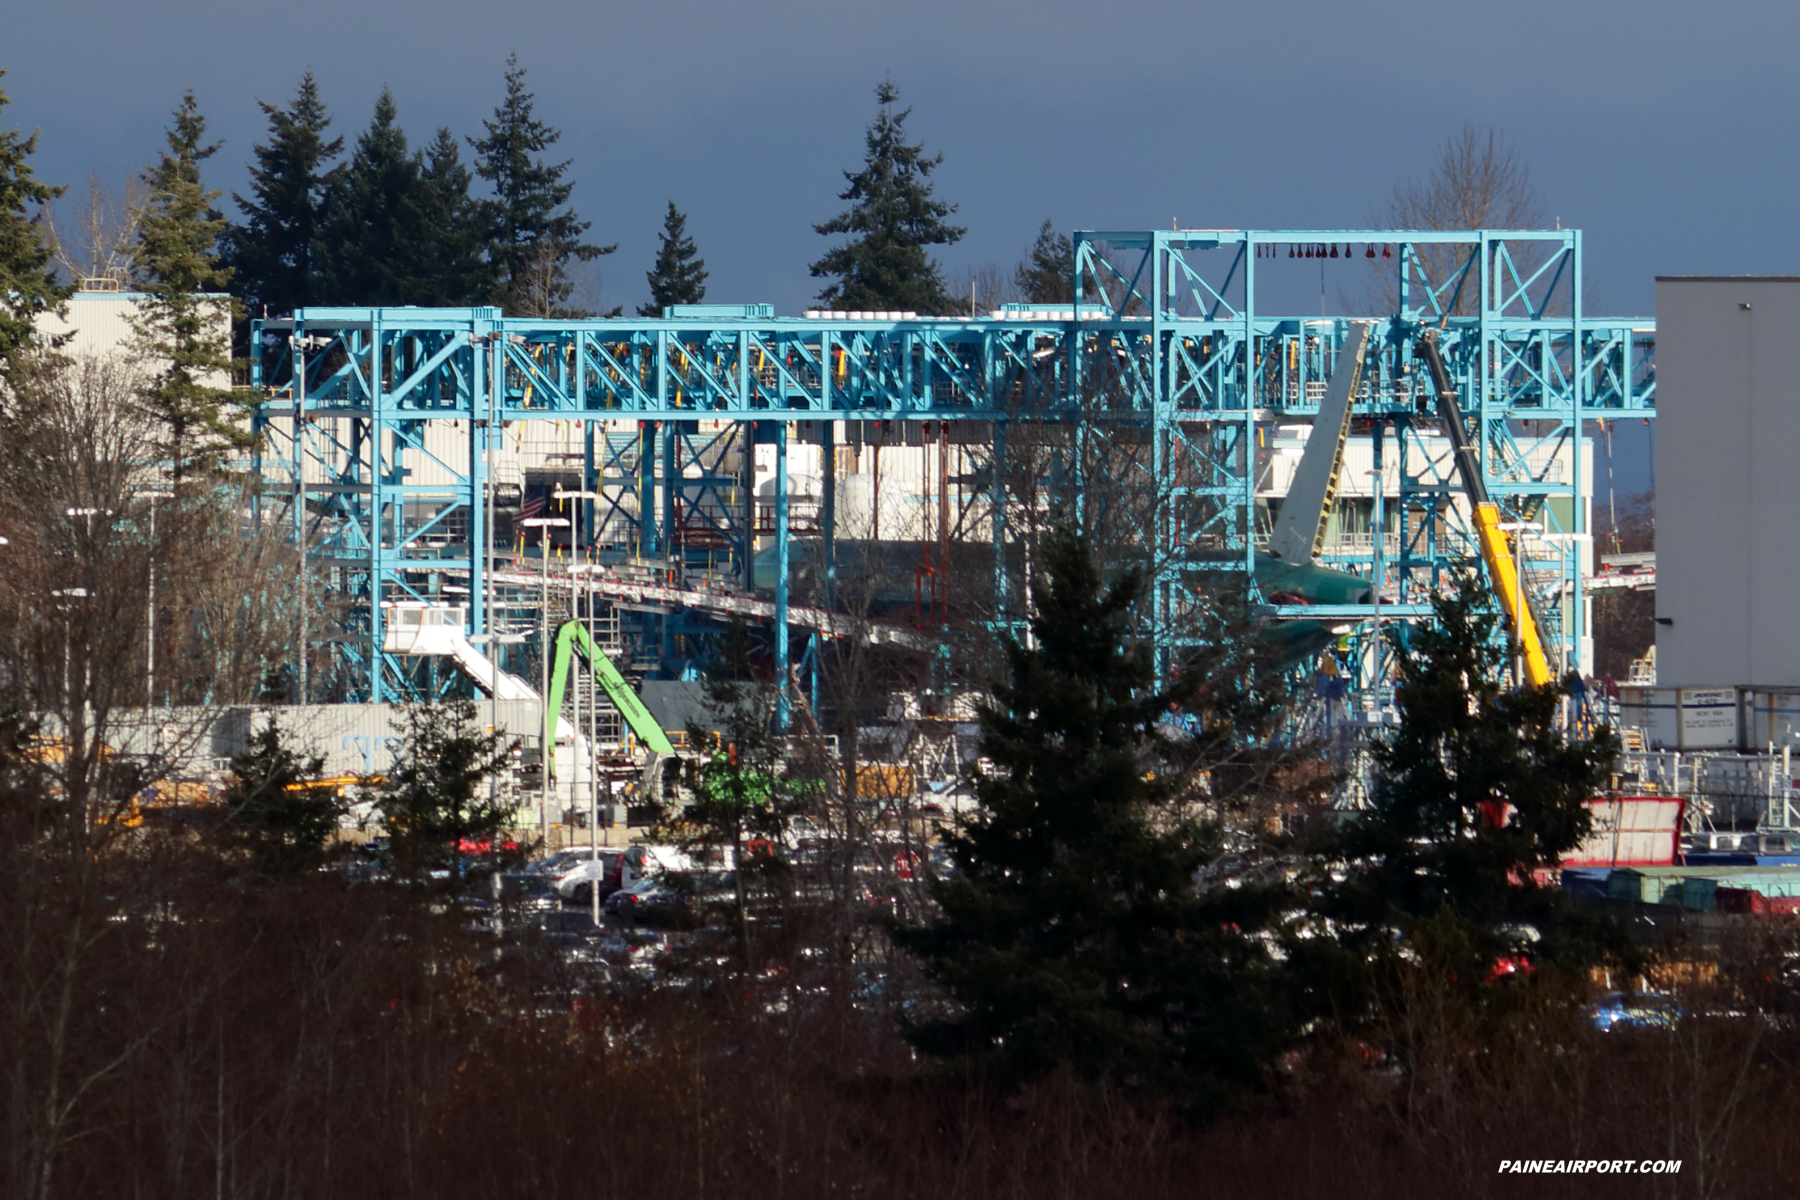 777-9 fatigue test frame at Paine Field